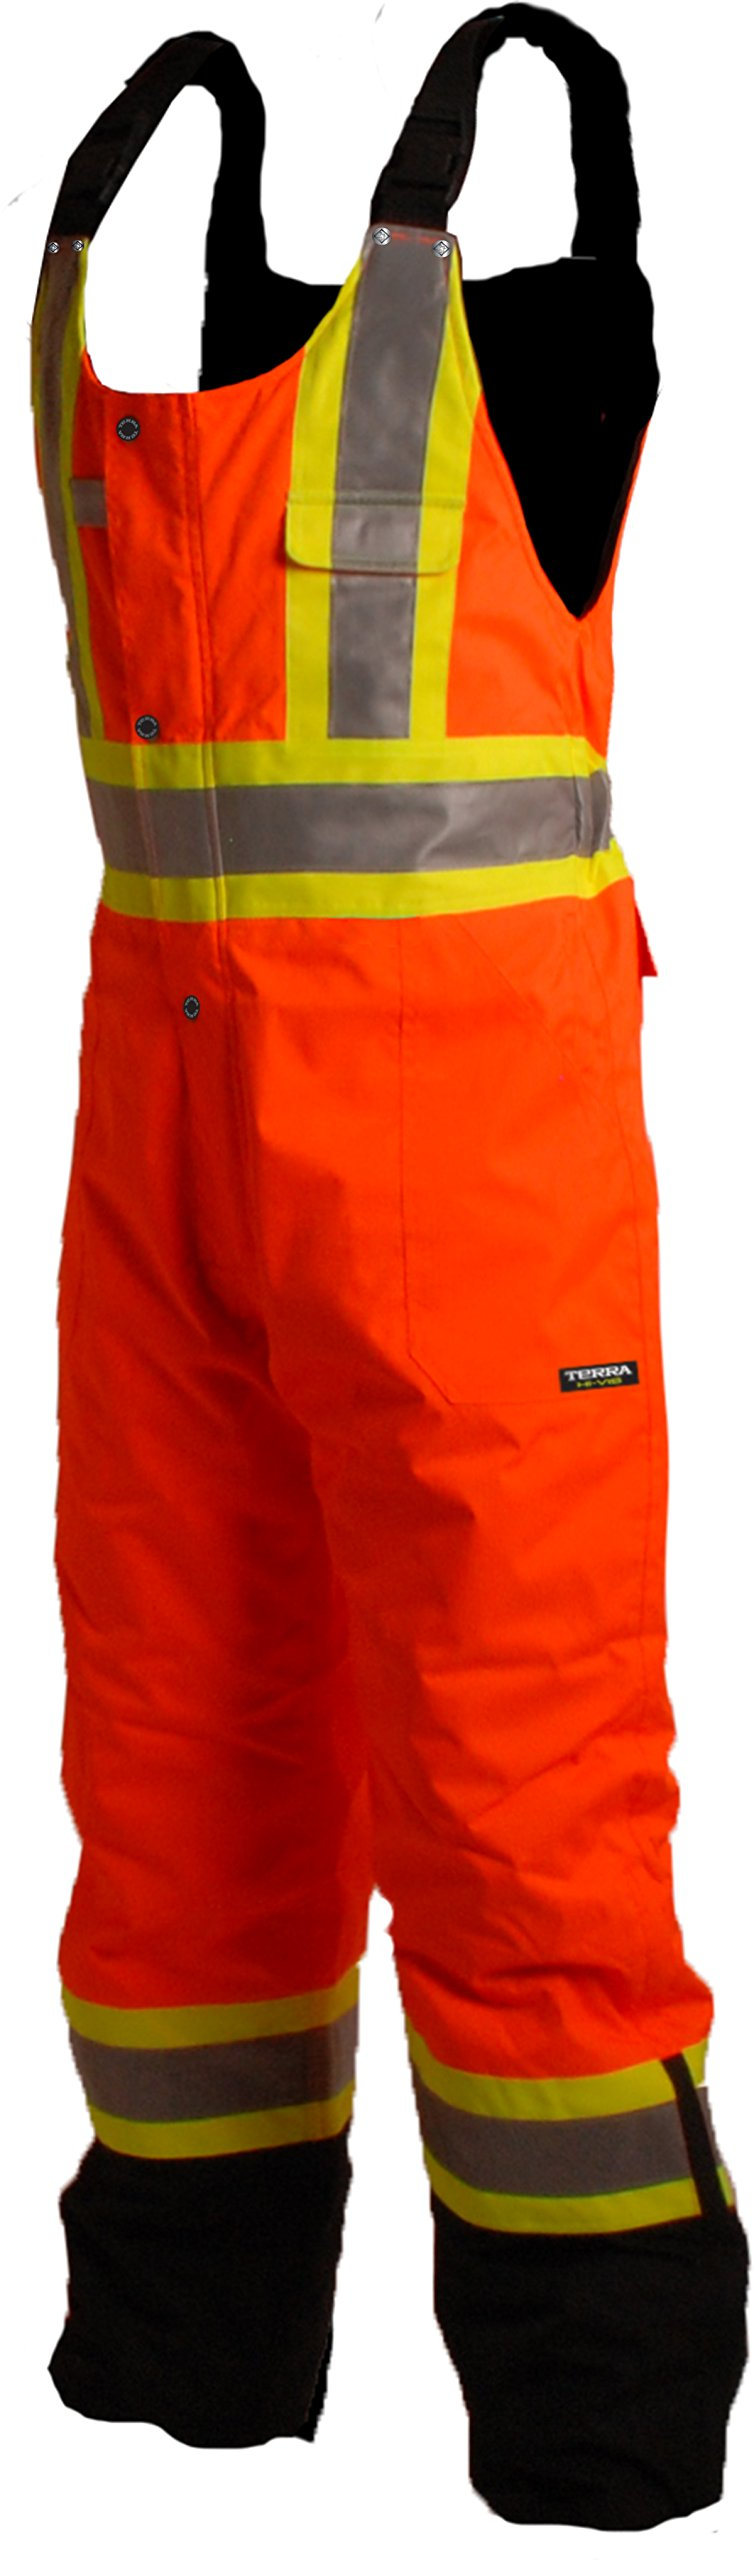 Terra 116507ORXL High-Visibility Lined Reflective Safety Bib Overall, Orange, X-Large